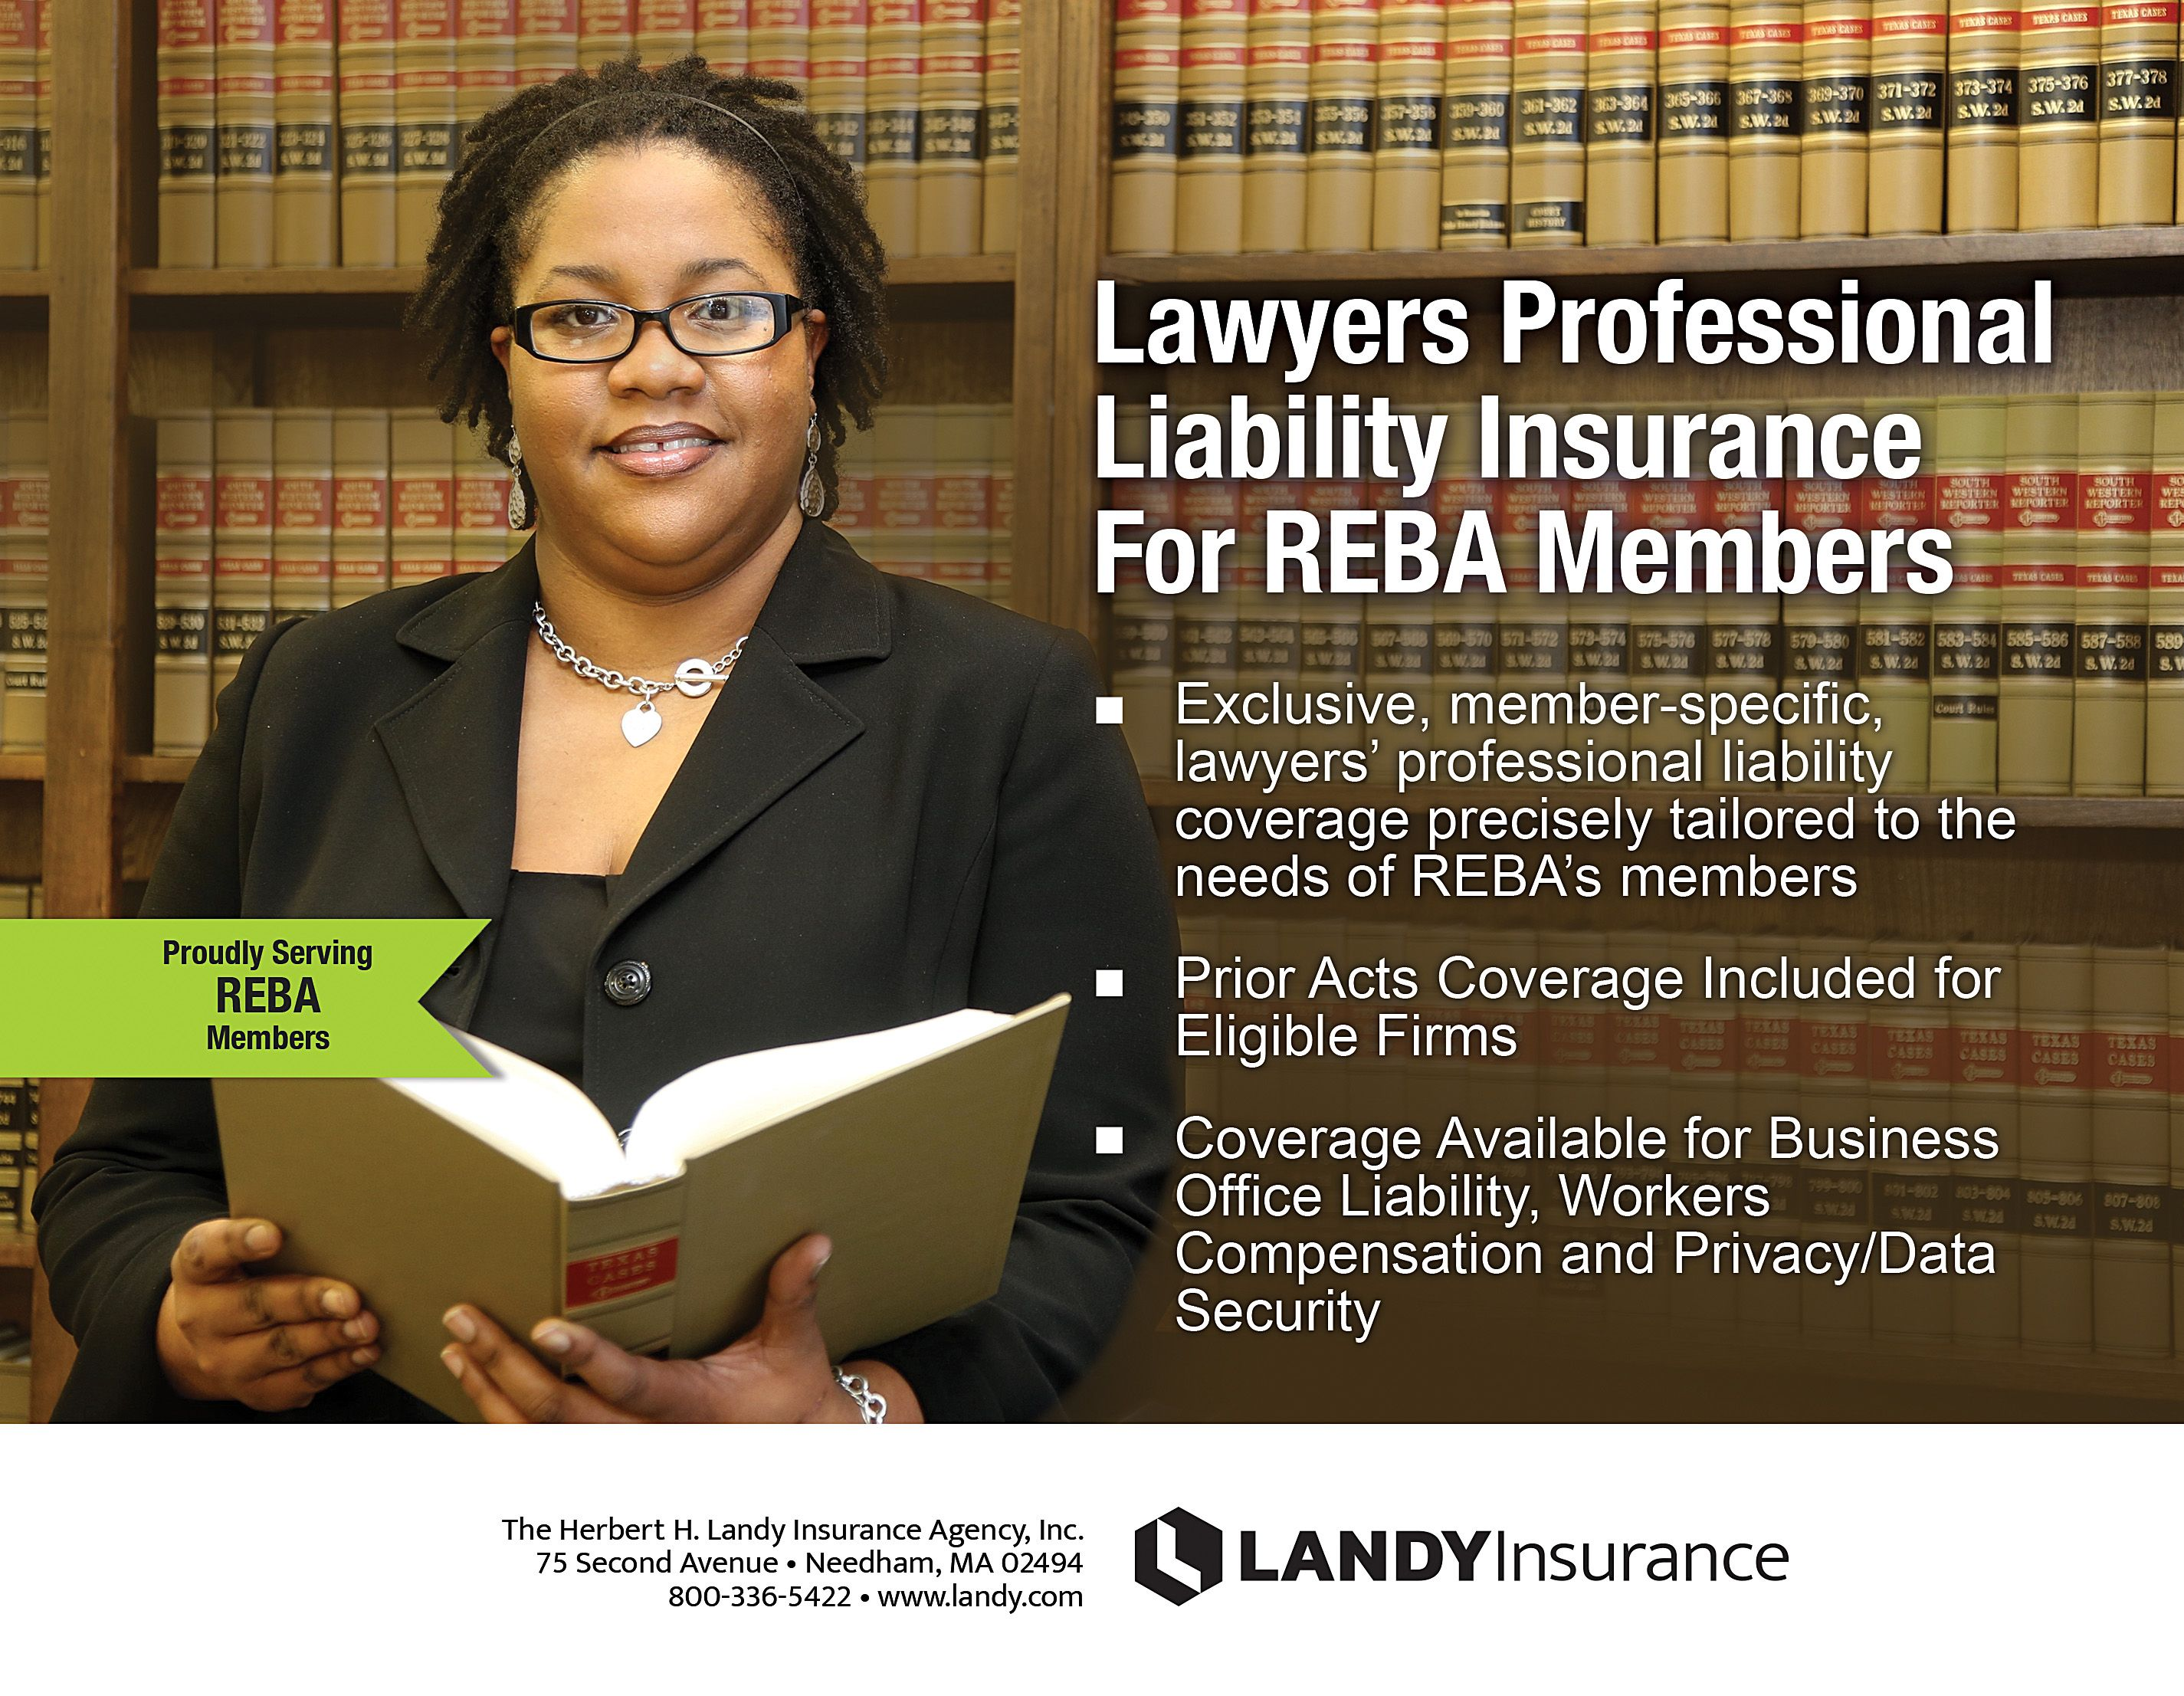 Lawyers Professional Liability Insurance for Real Estate